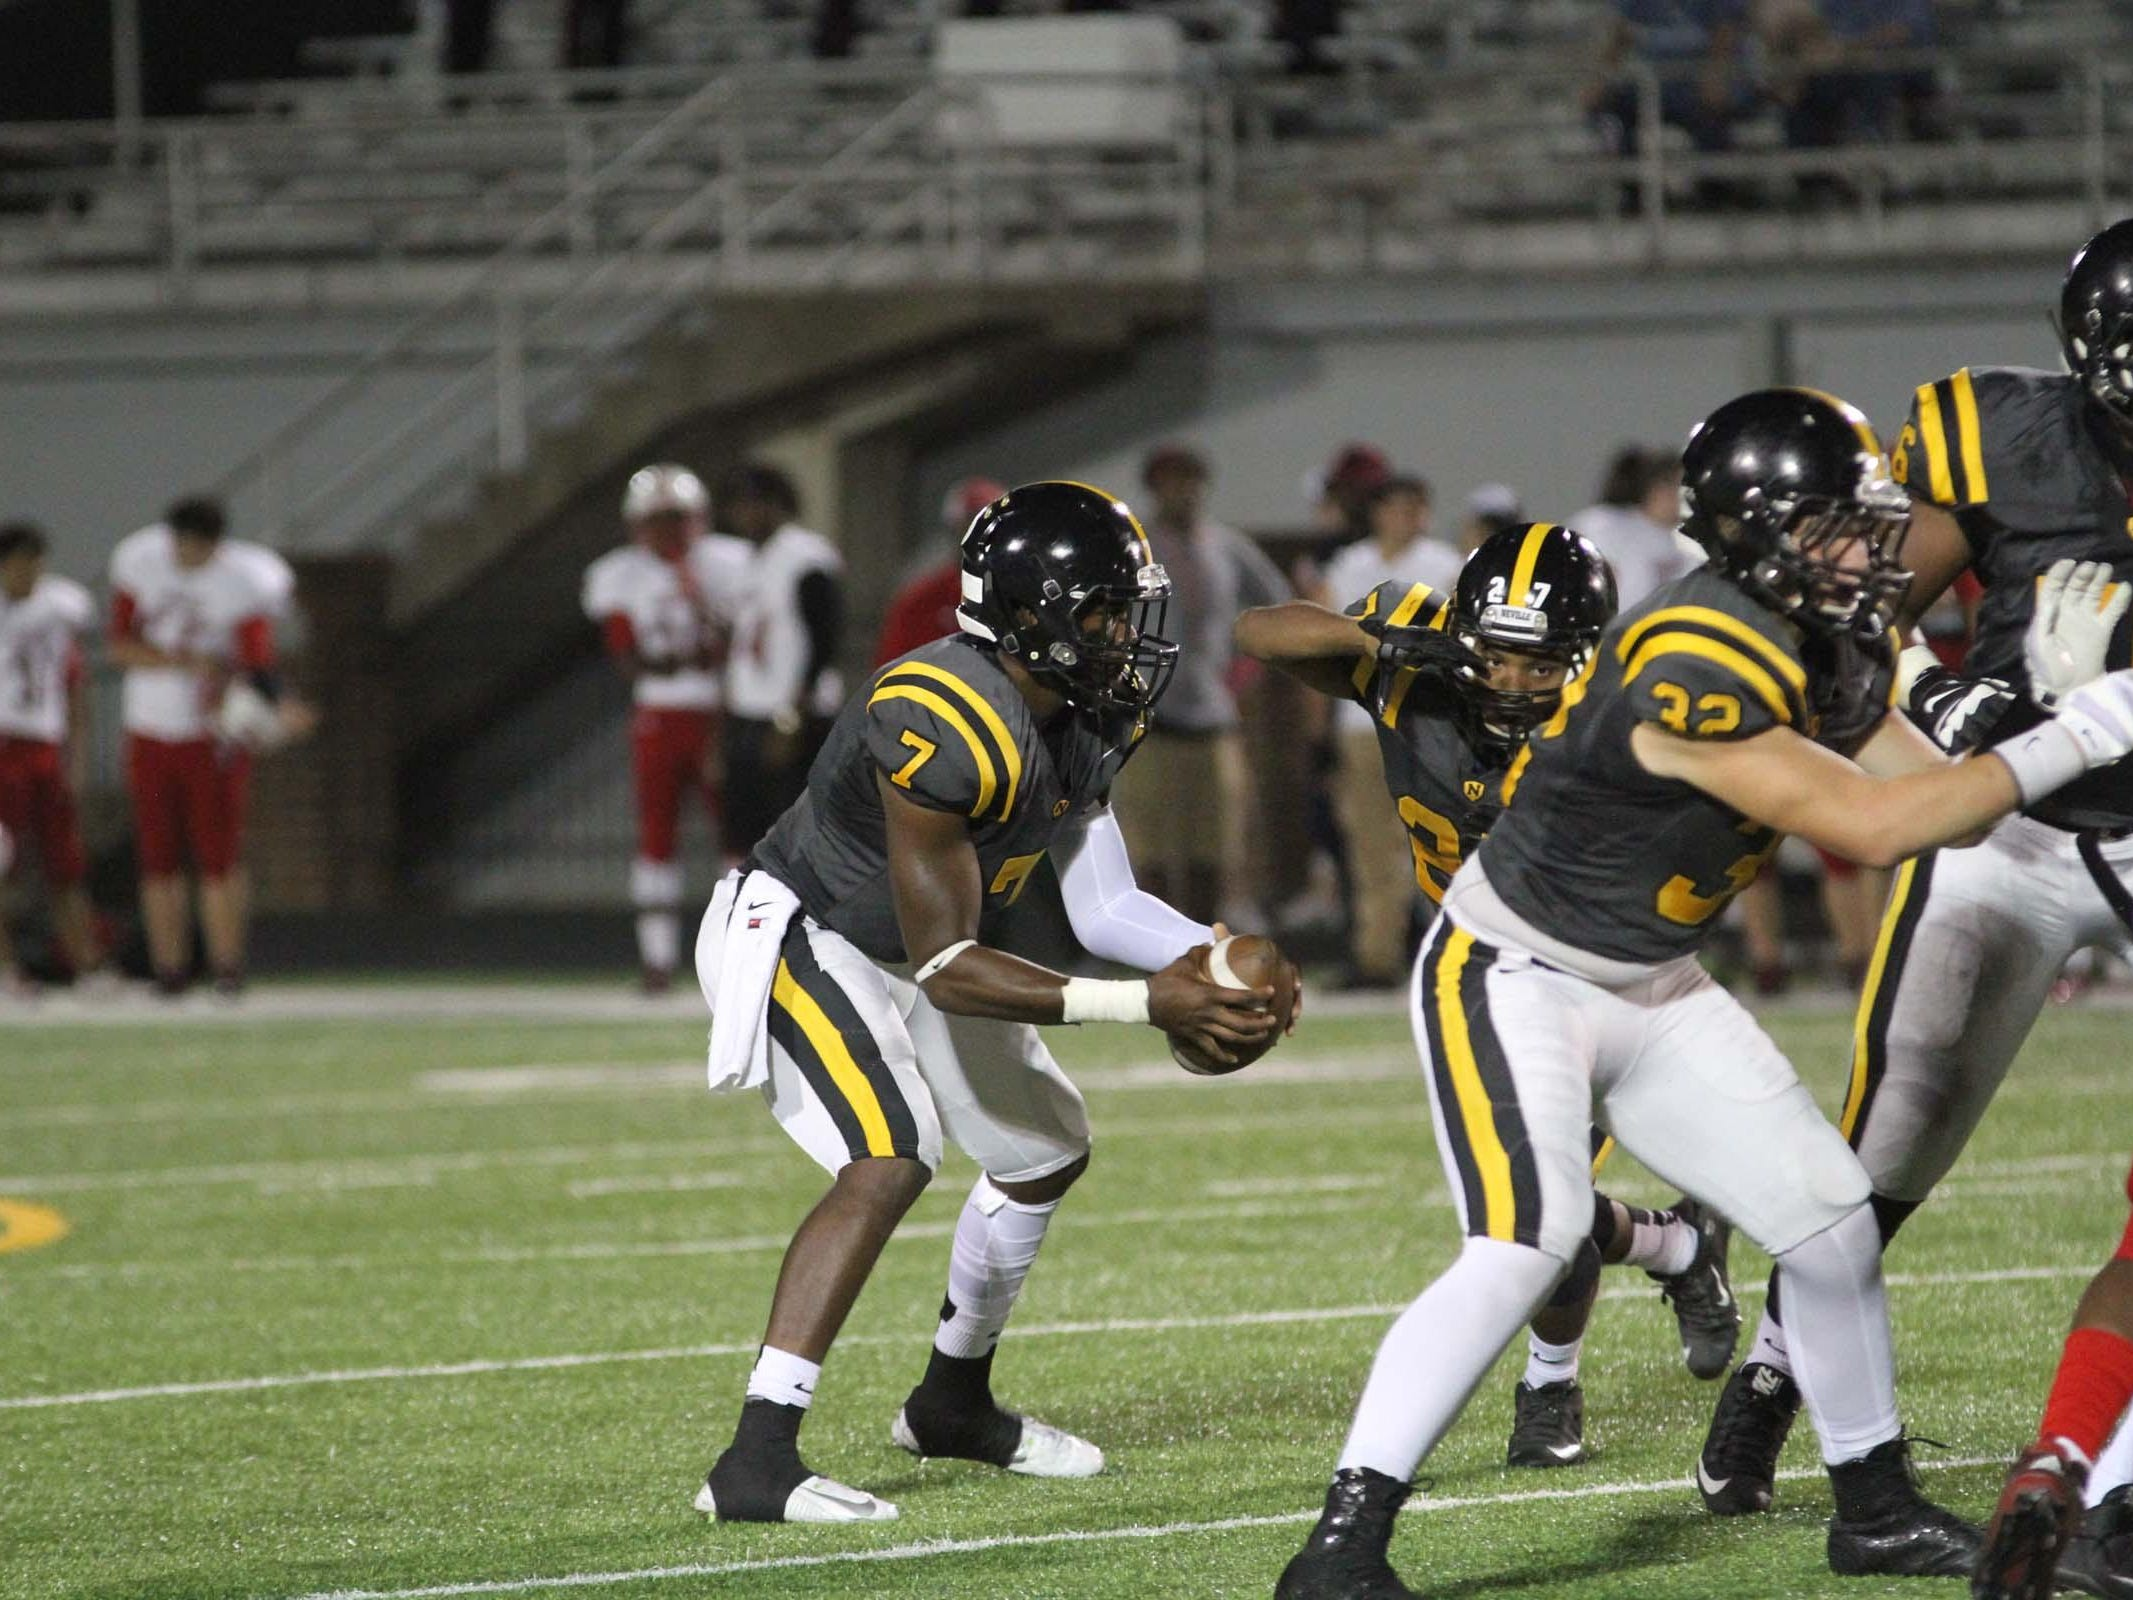 The Tioga Indians played the Neville Tigers Friday night in Monroe